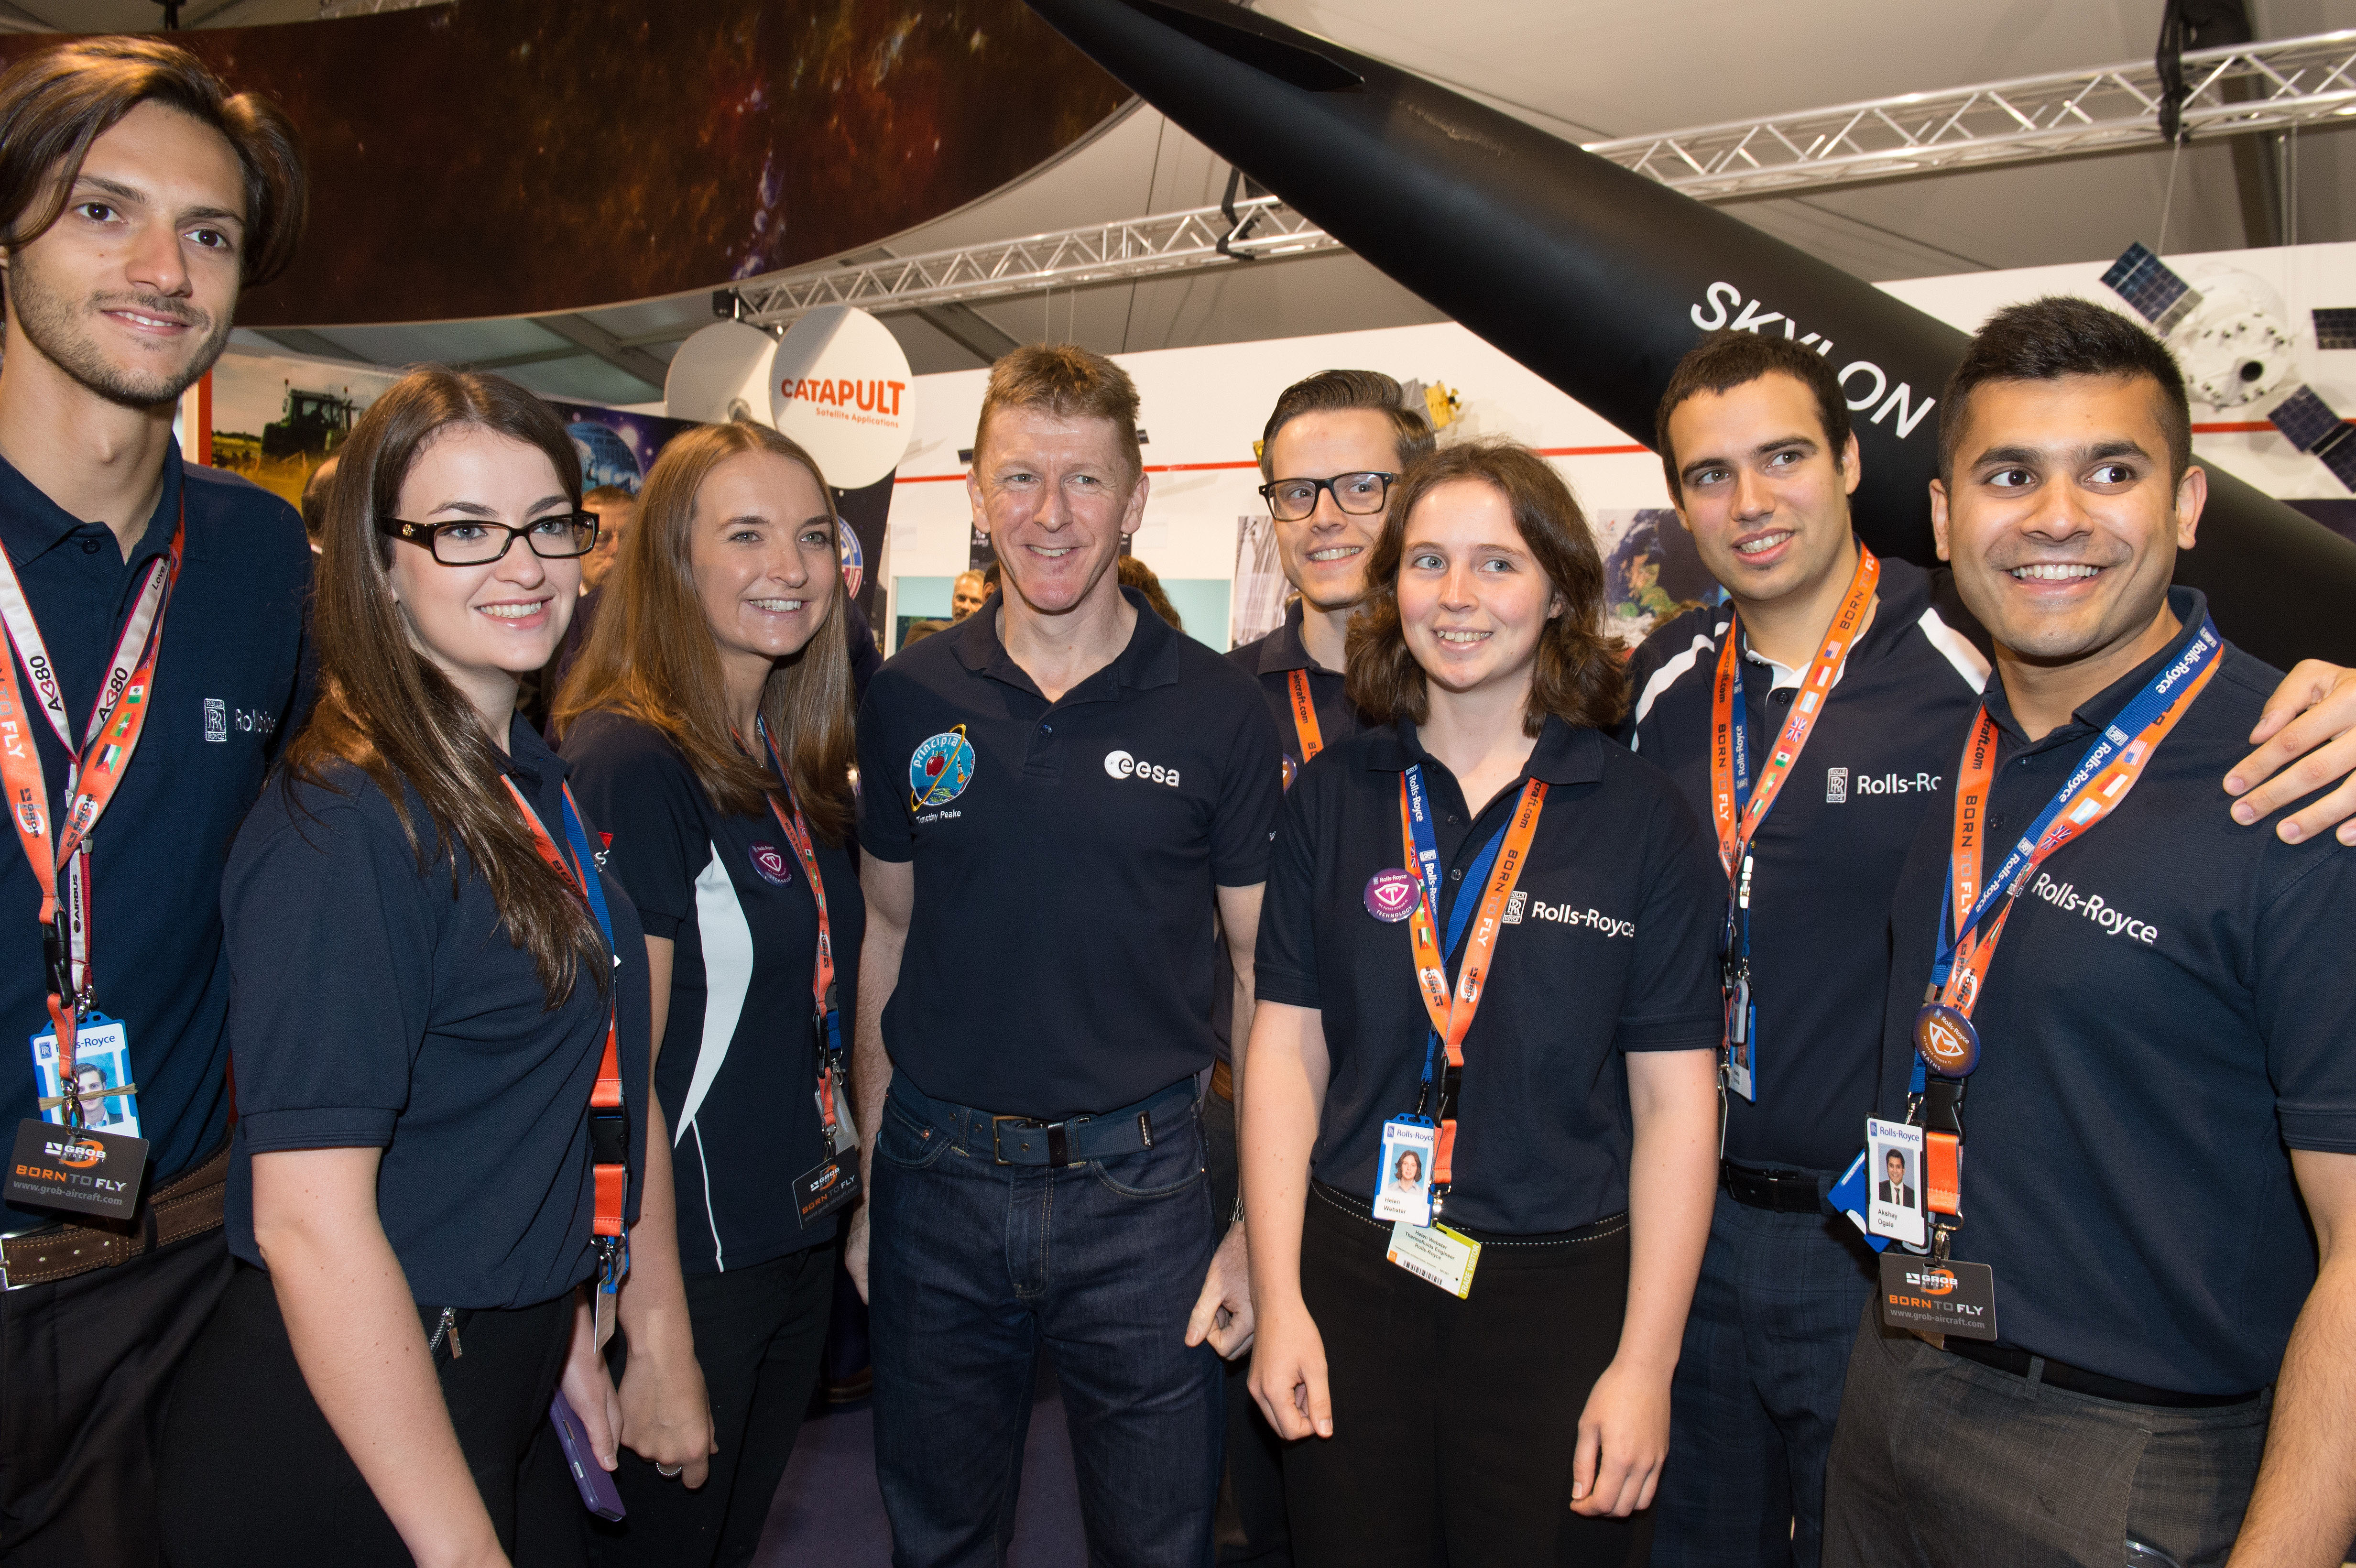 Space In Images 2016 07 Tim Peake Meet And Greet On Futures